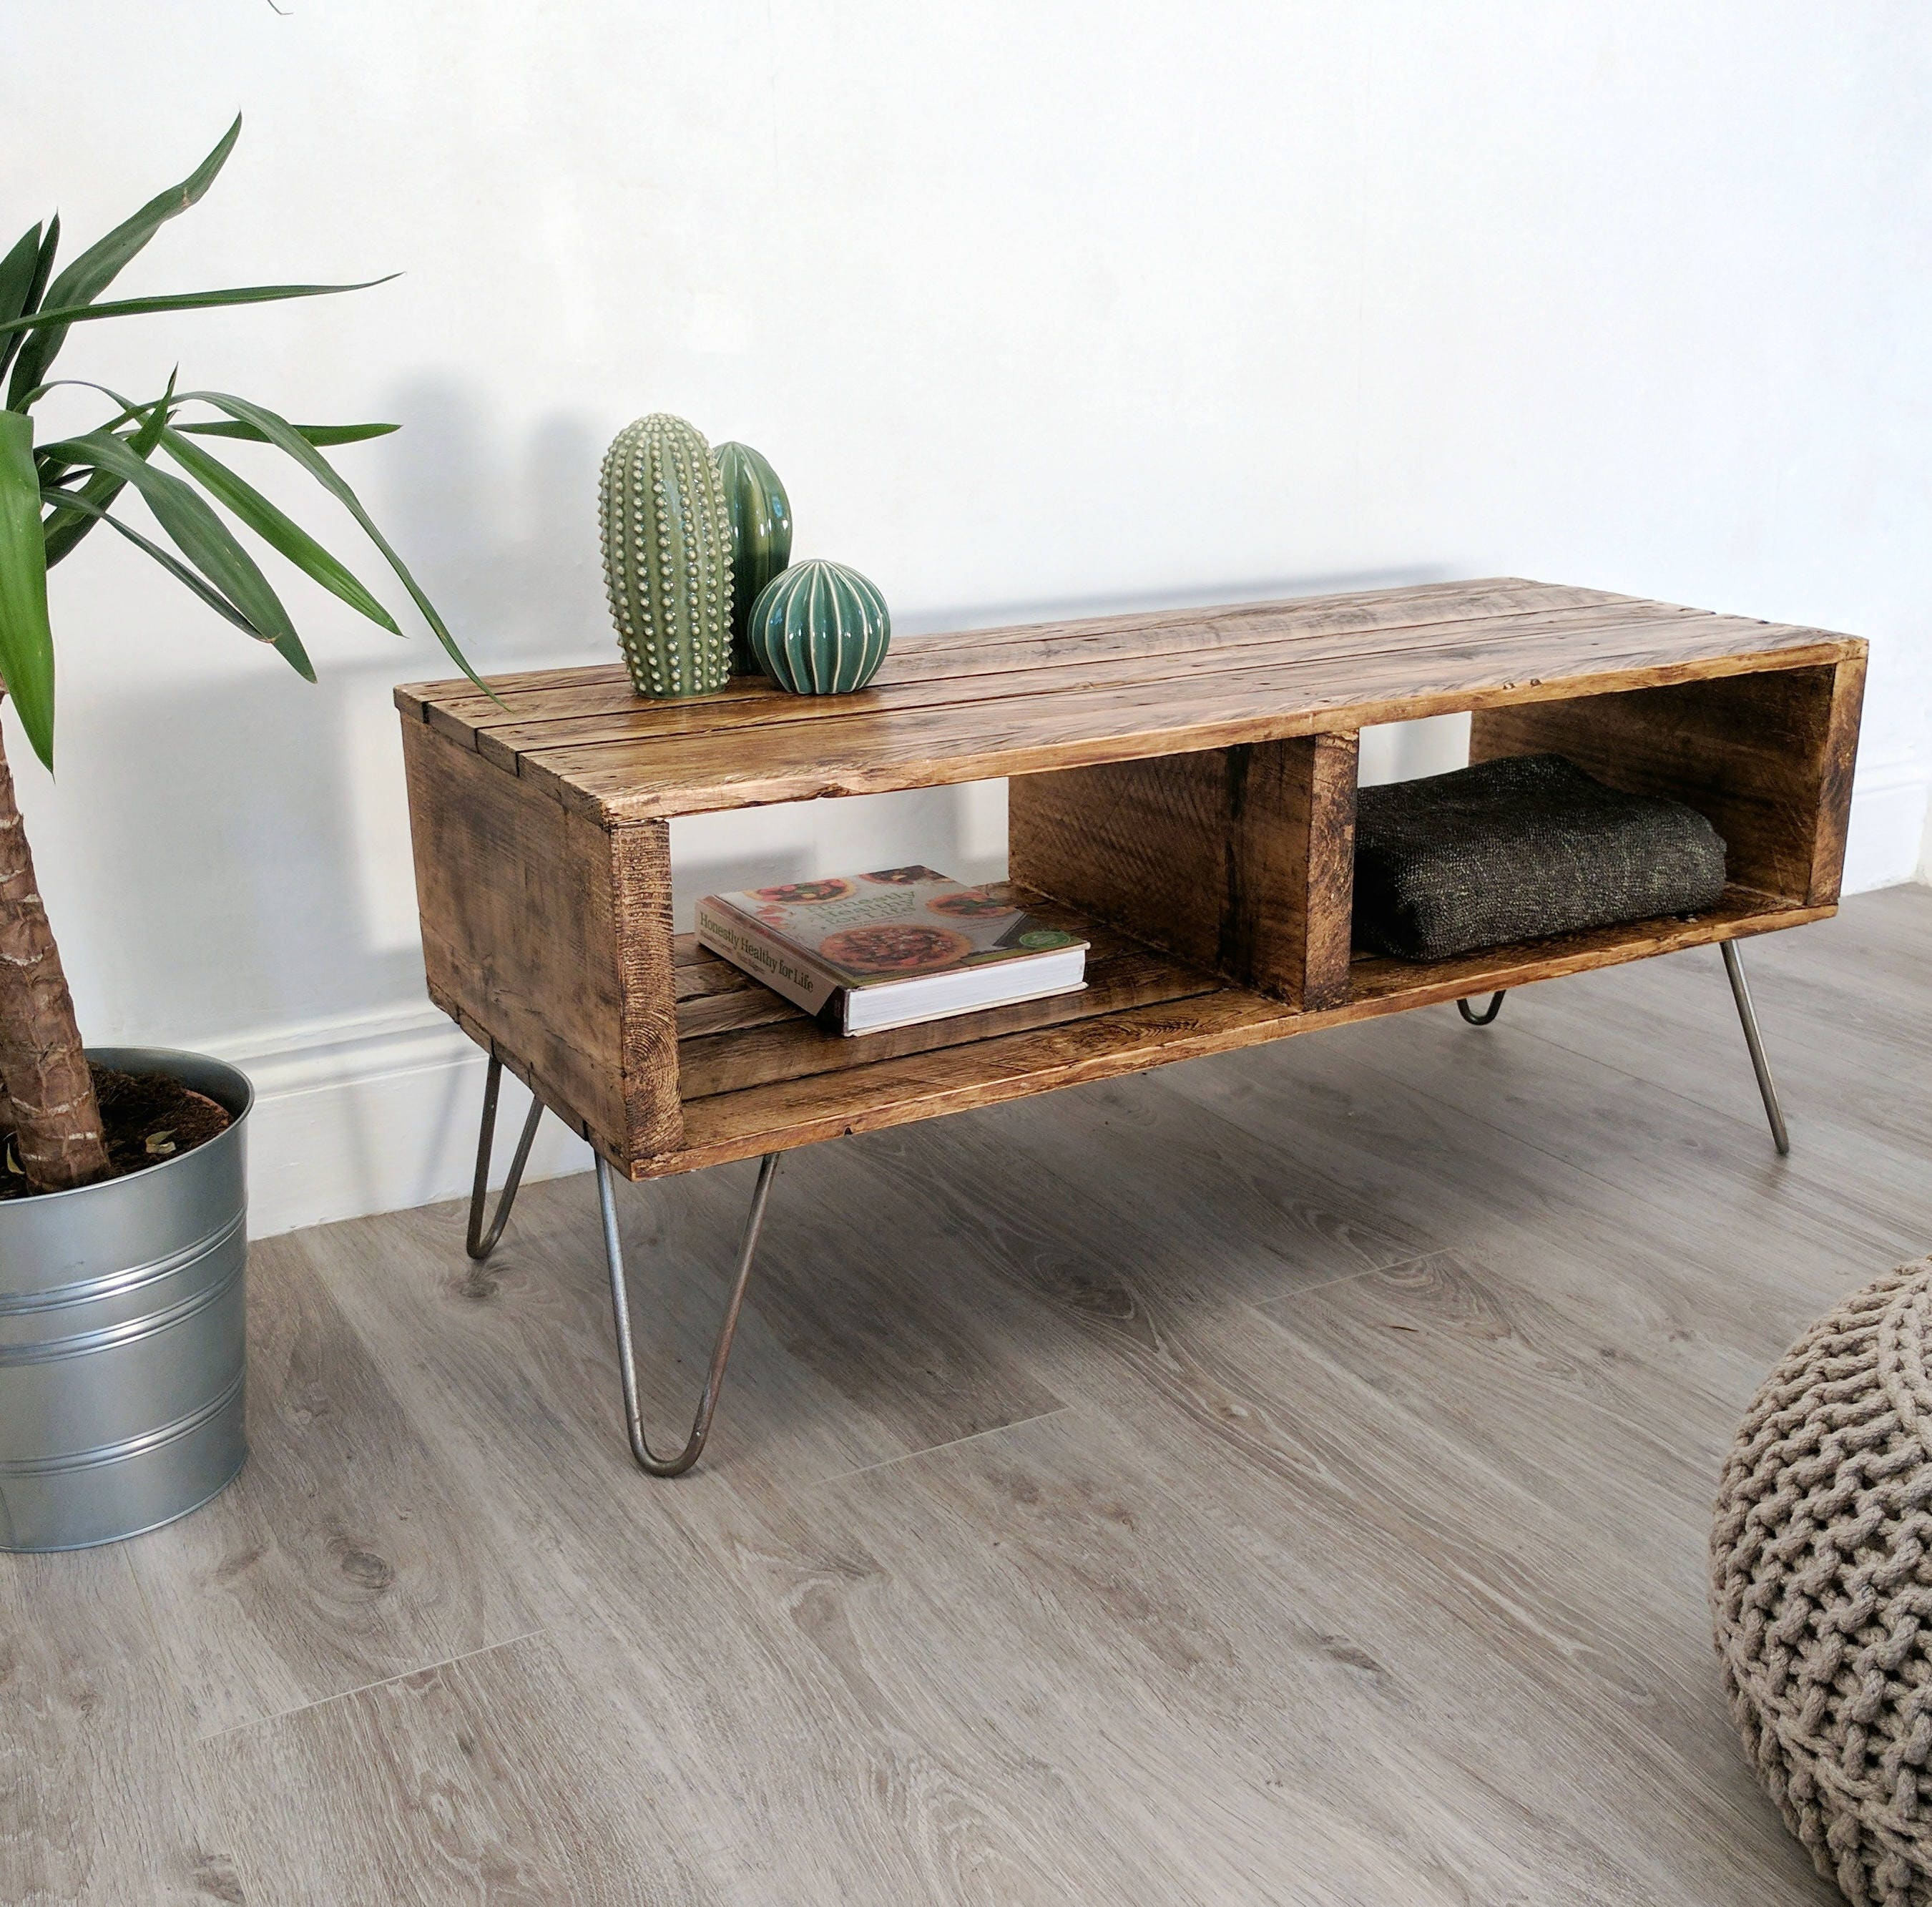 Rustic Retro Pallet Coffee Table TURVAS in Roast Coffee